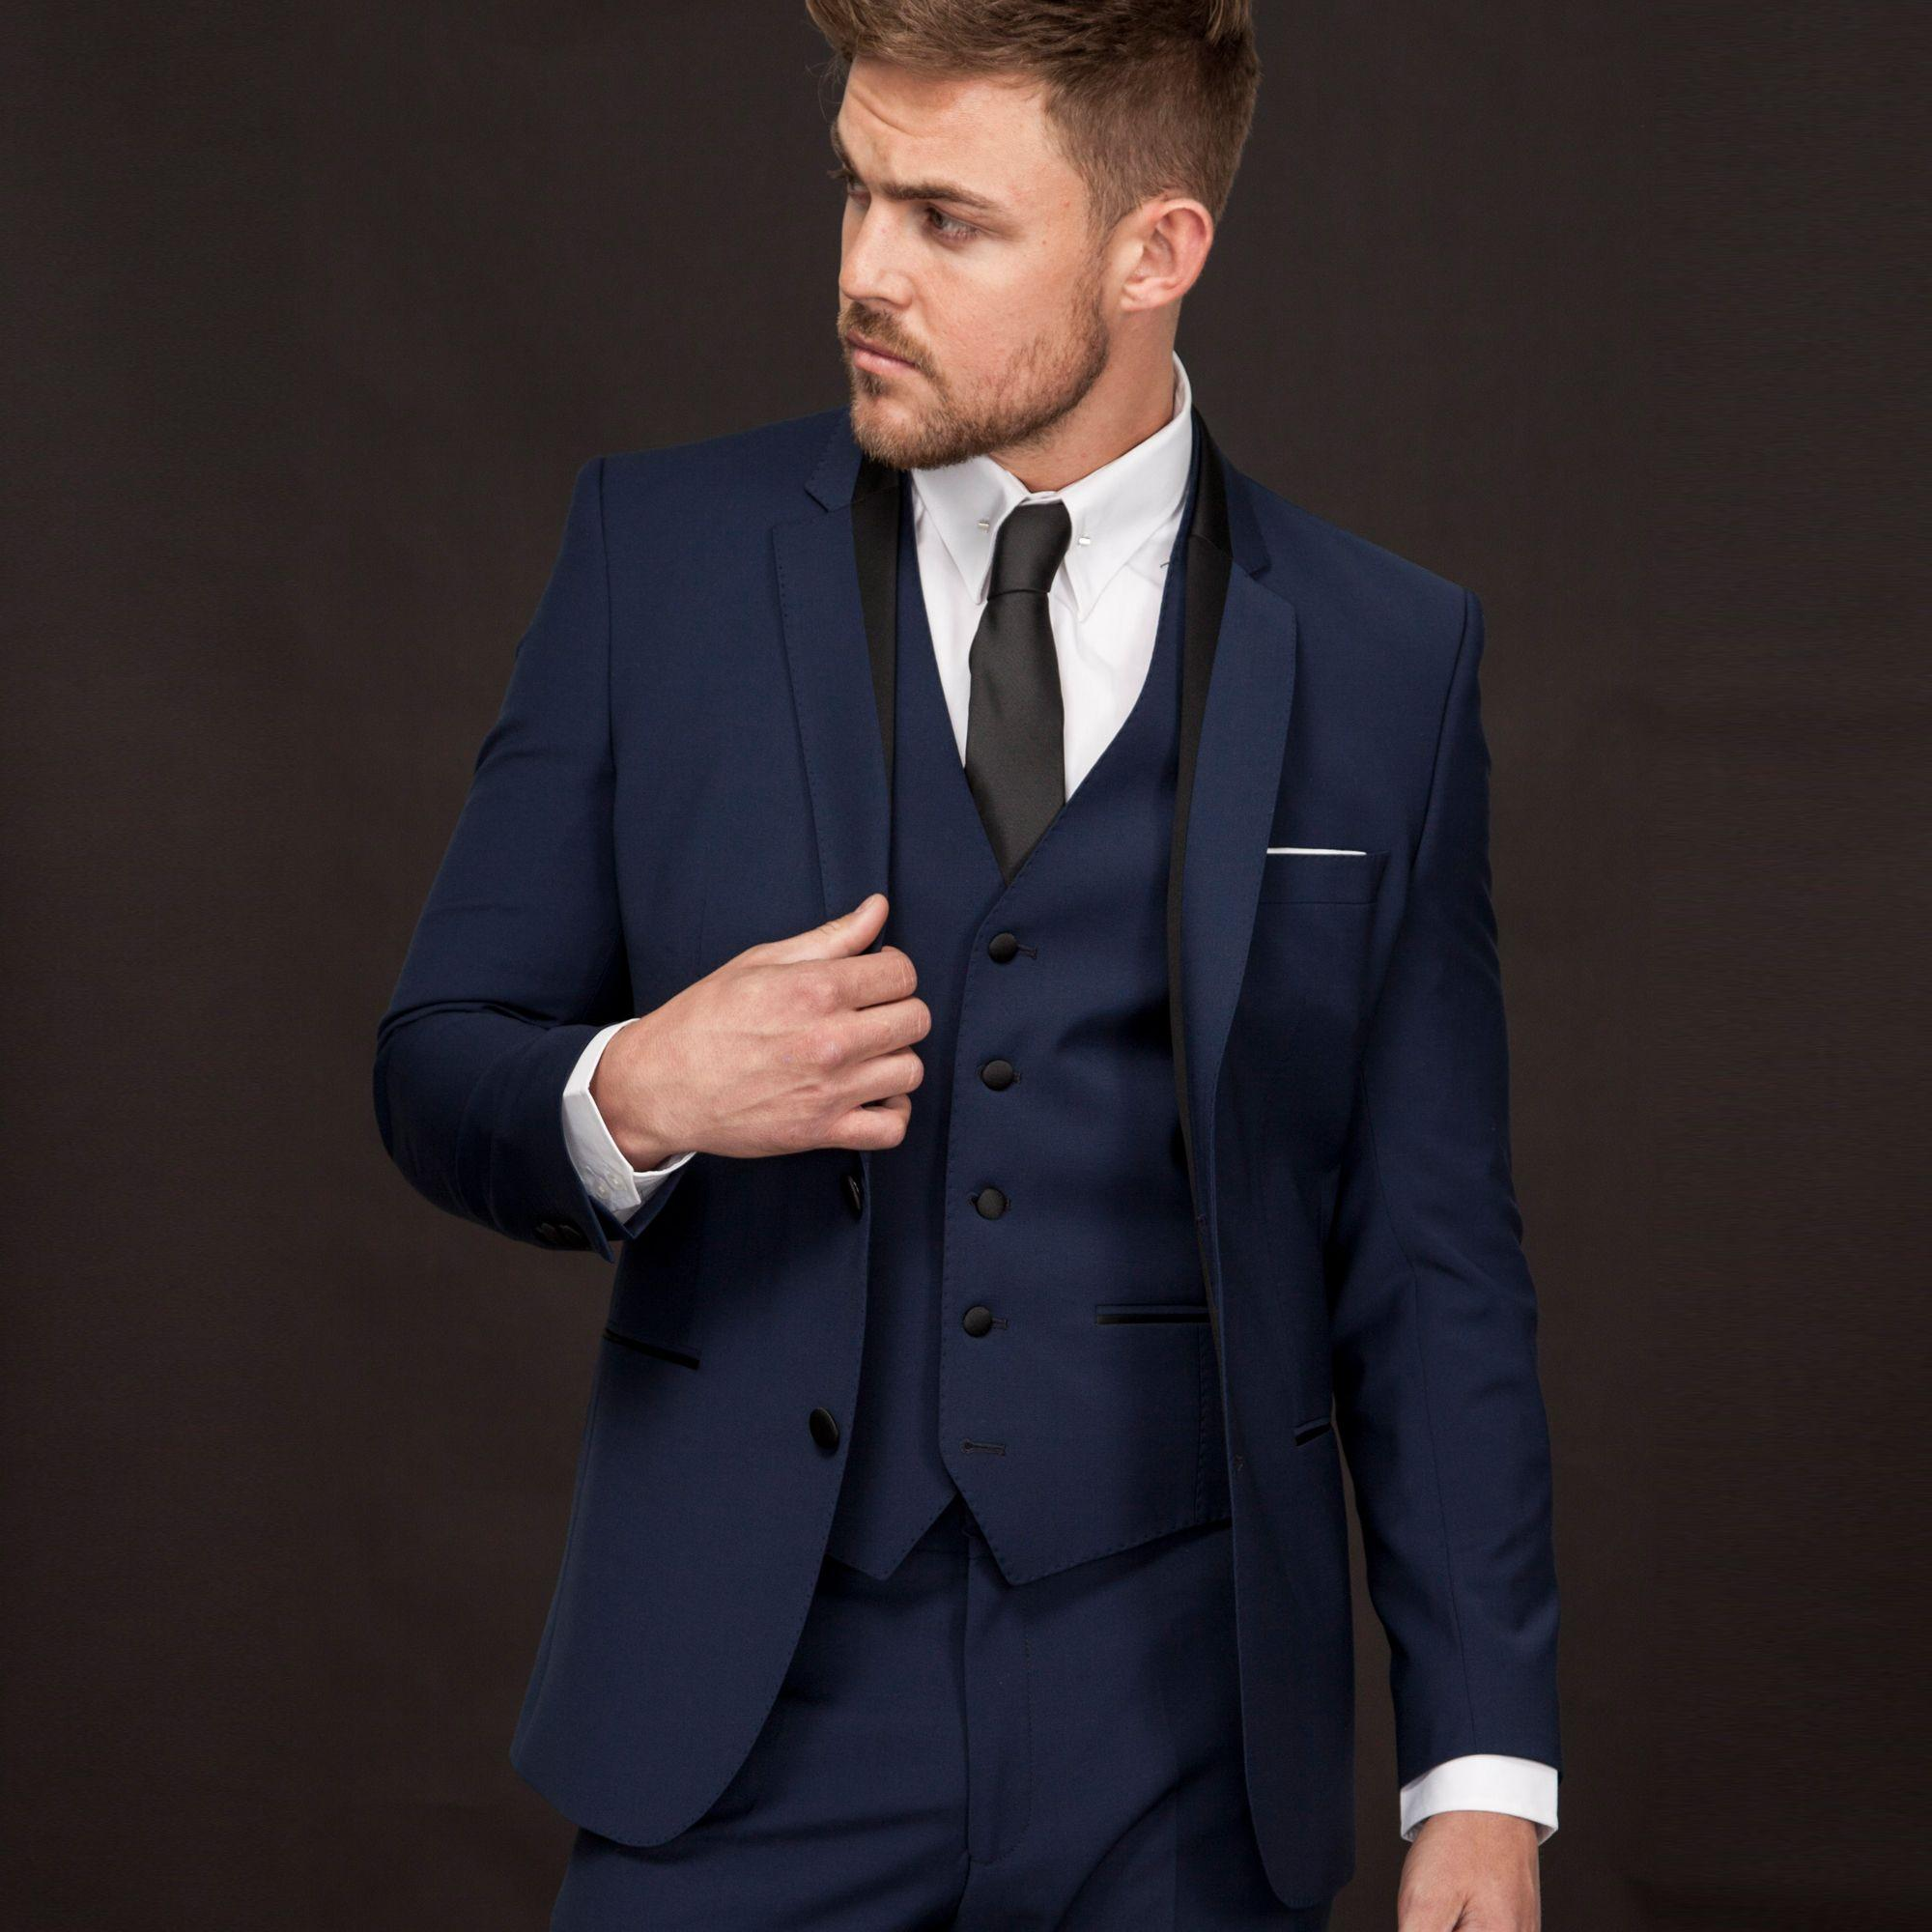 Blue Groom Tuxedos Notched Lapel Wedding Suits For Men Formal ...